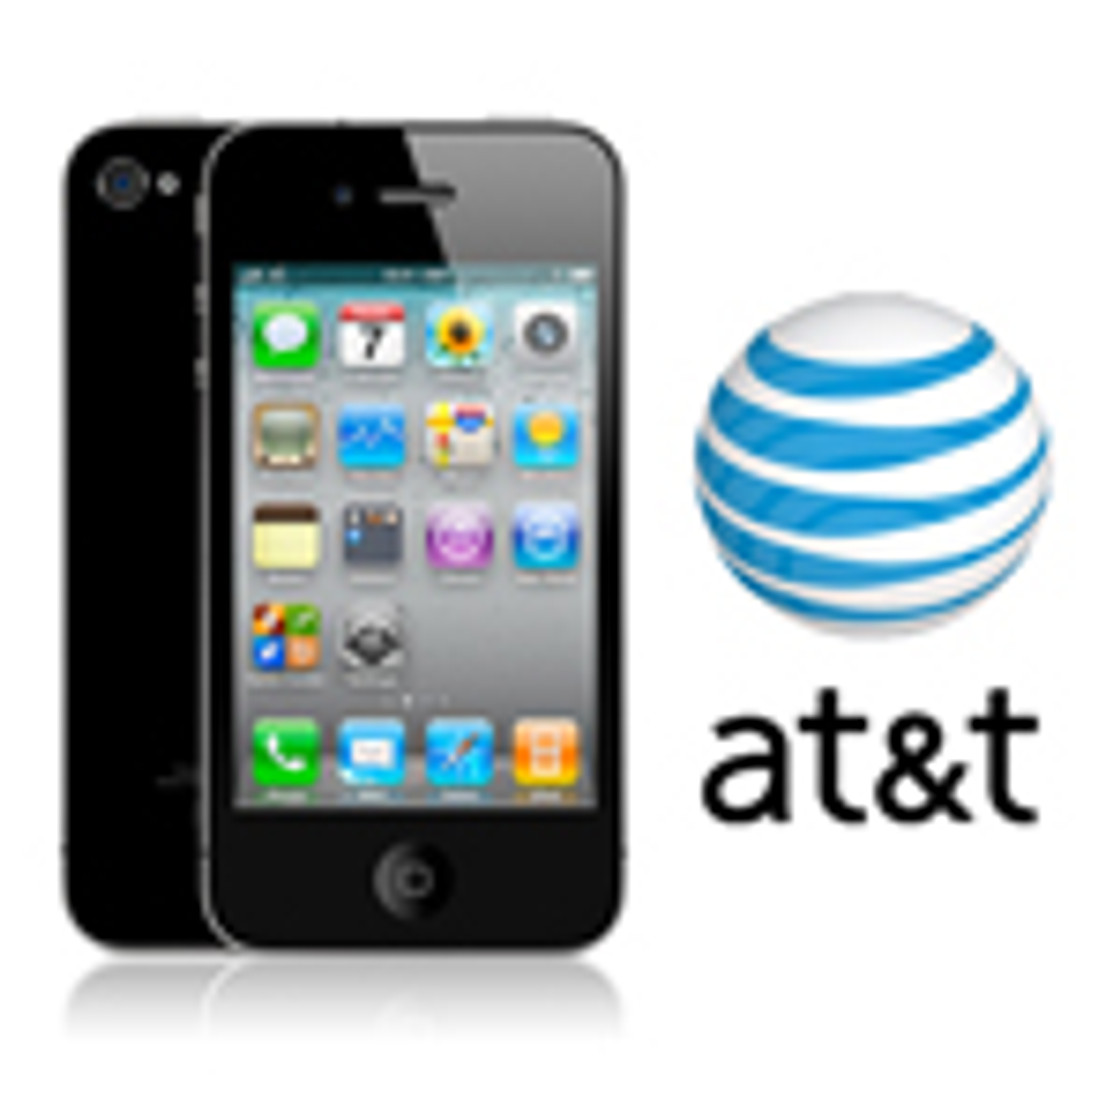 AT&T iPhone 4